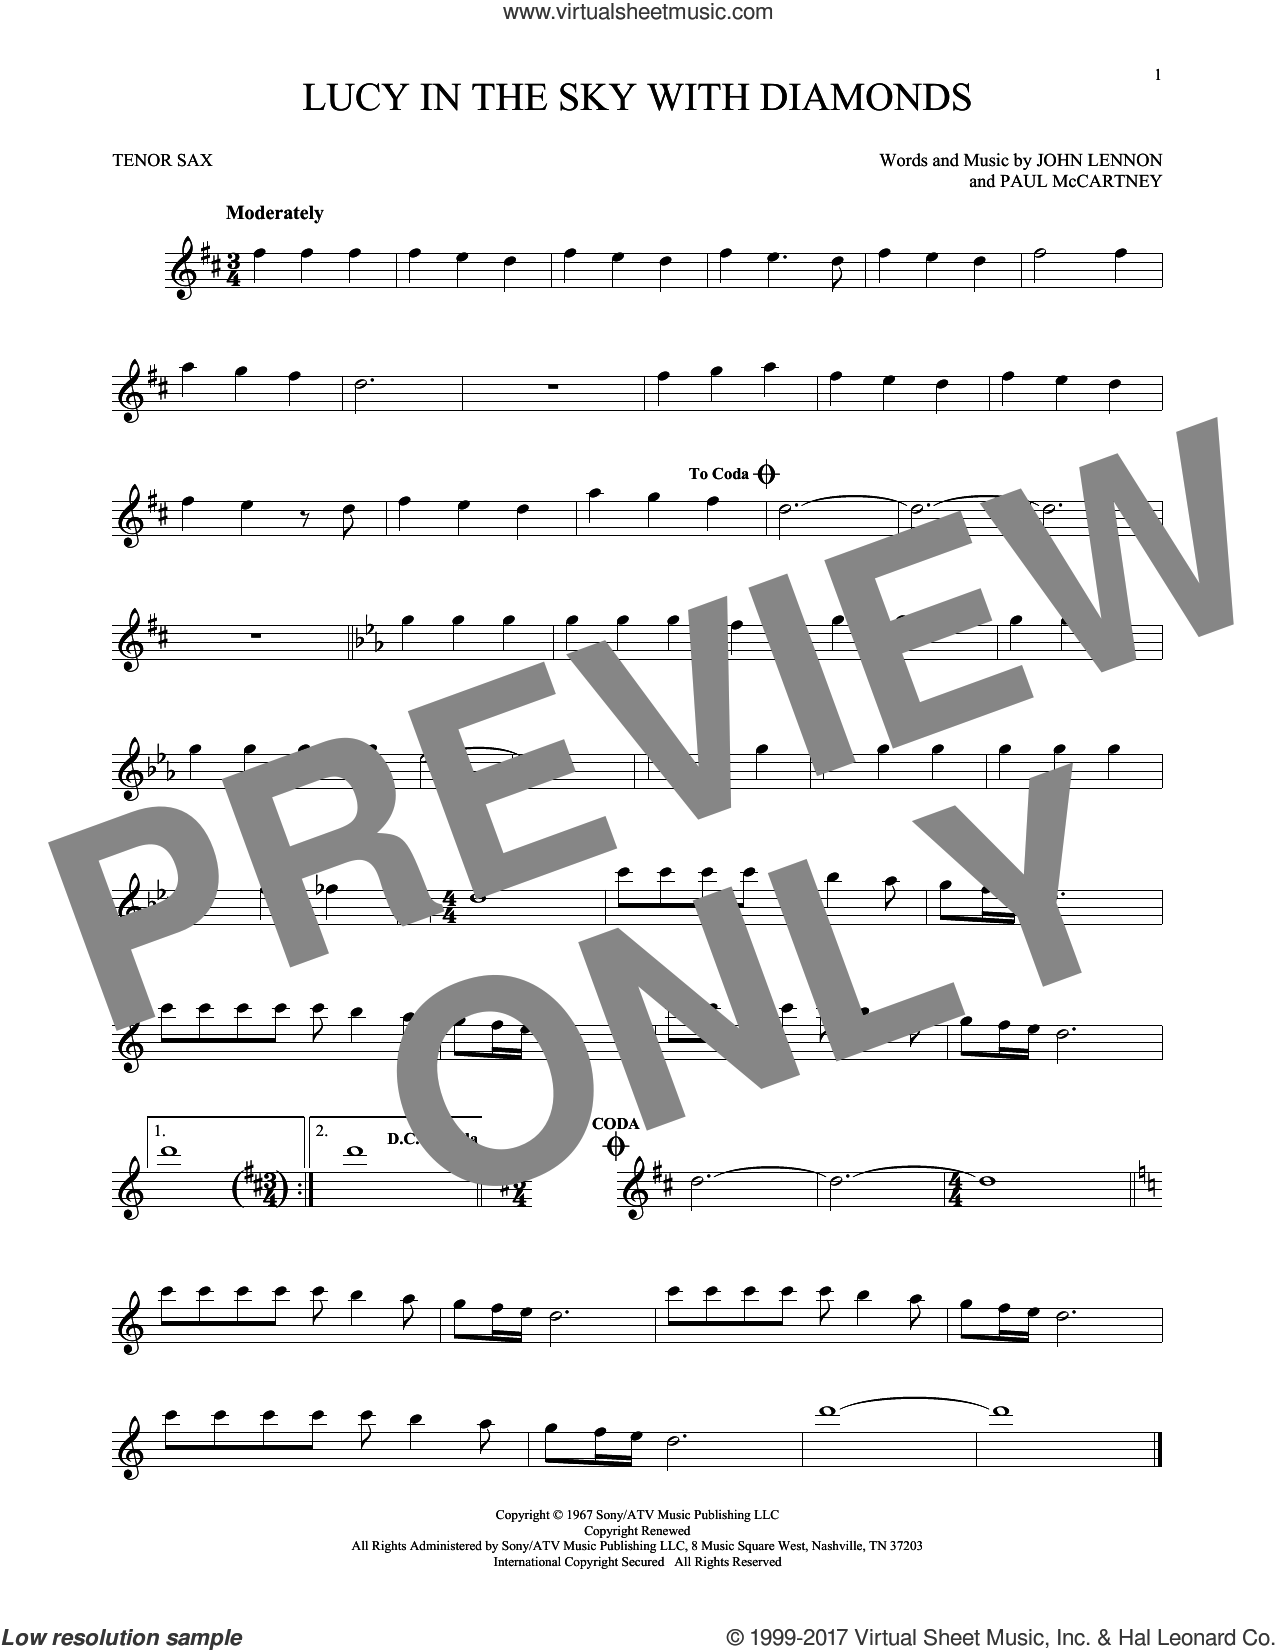 Lucy In The Sky With Diamonds sheet music for tenor saxophone solo by The Beatles, John Lennon and Paul McCartney, intermediate skill level